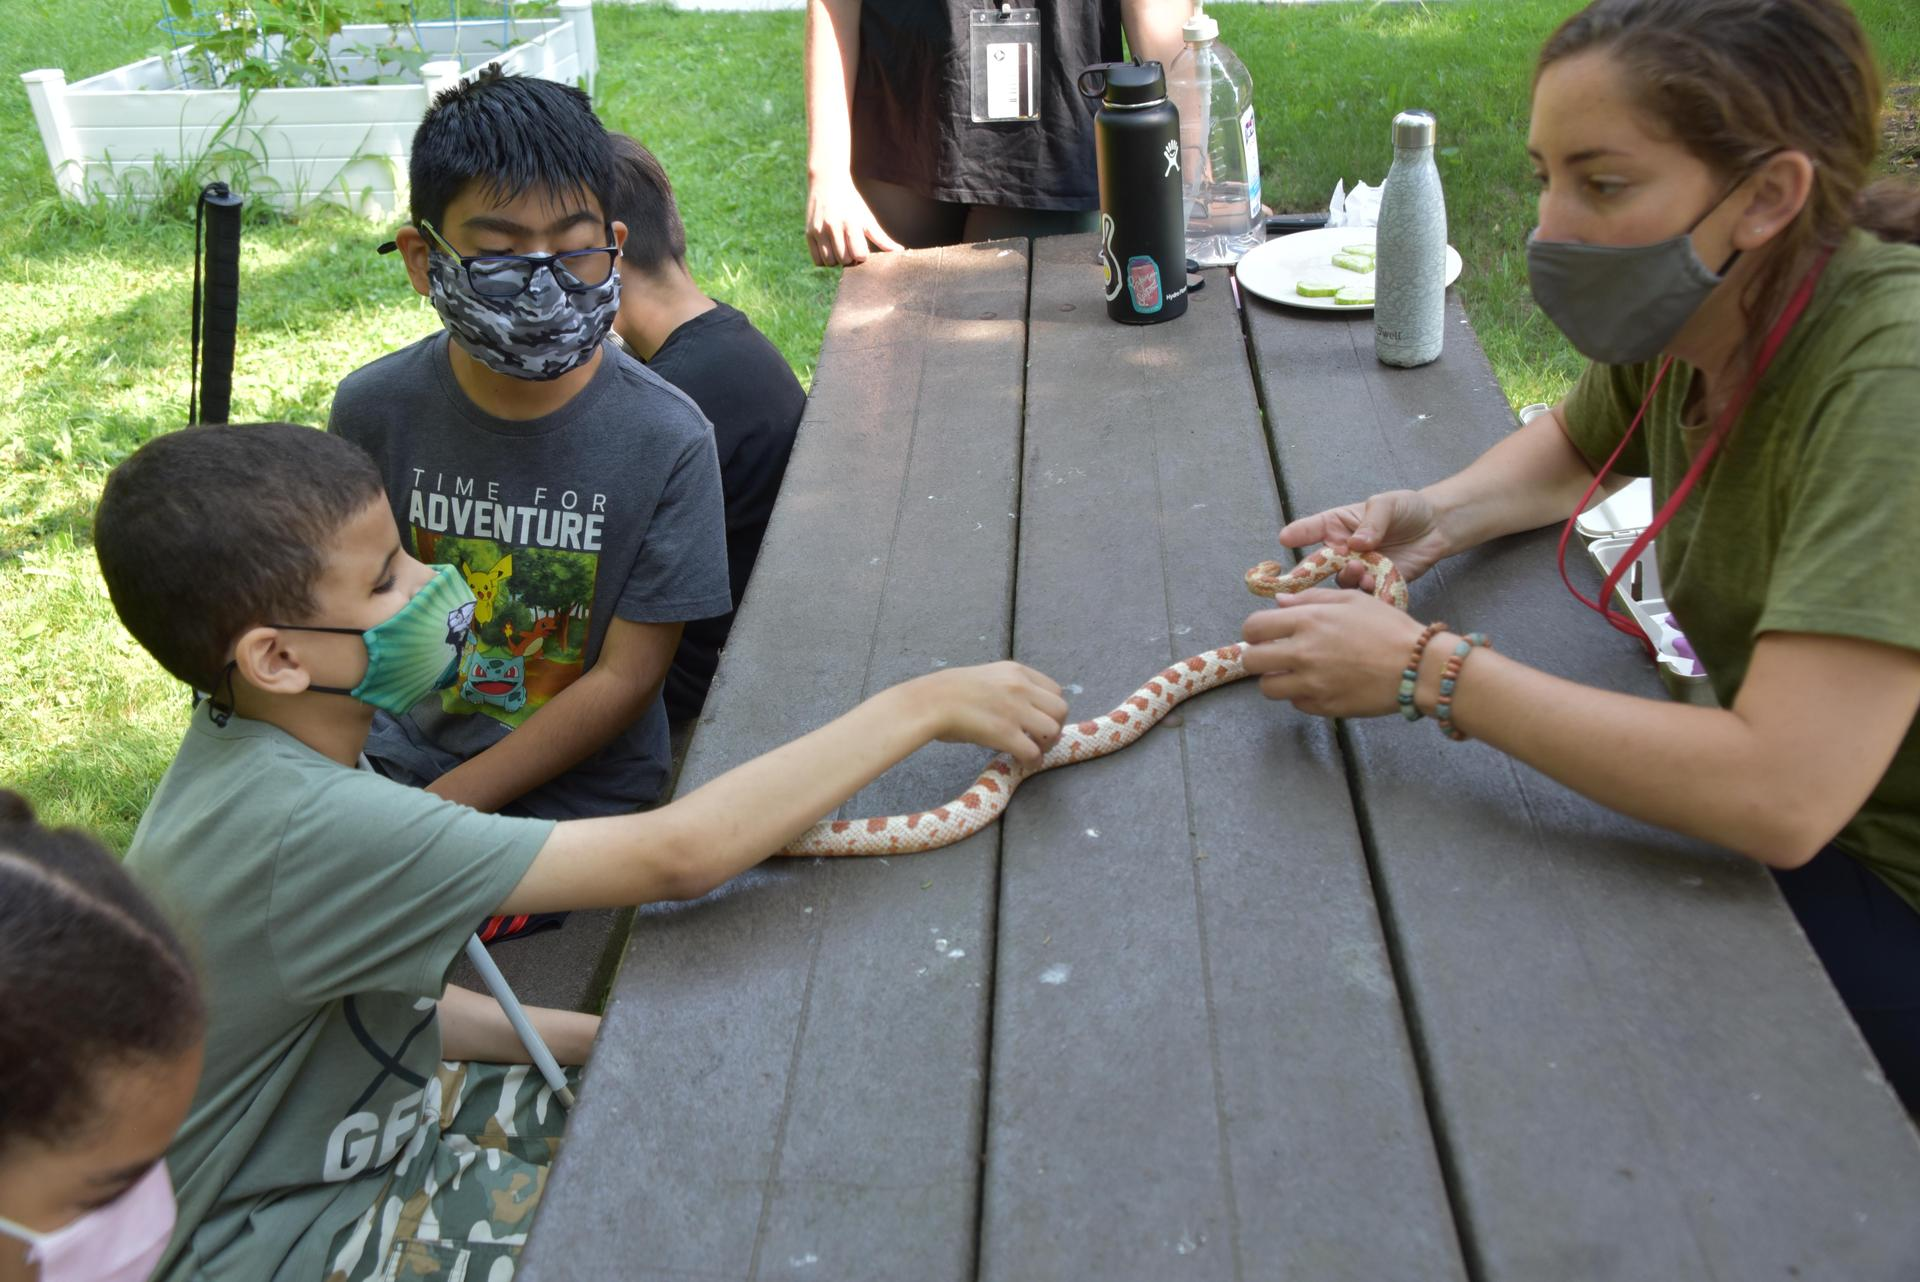 A teacher holds out a corn snake to a student as he puts his hand out to feel it.